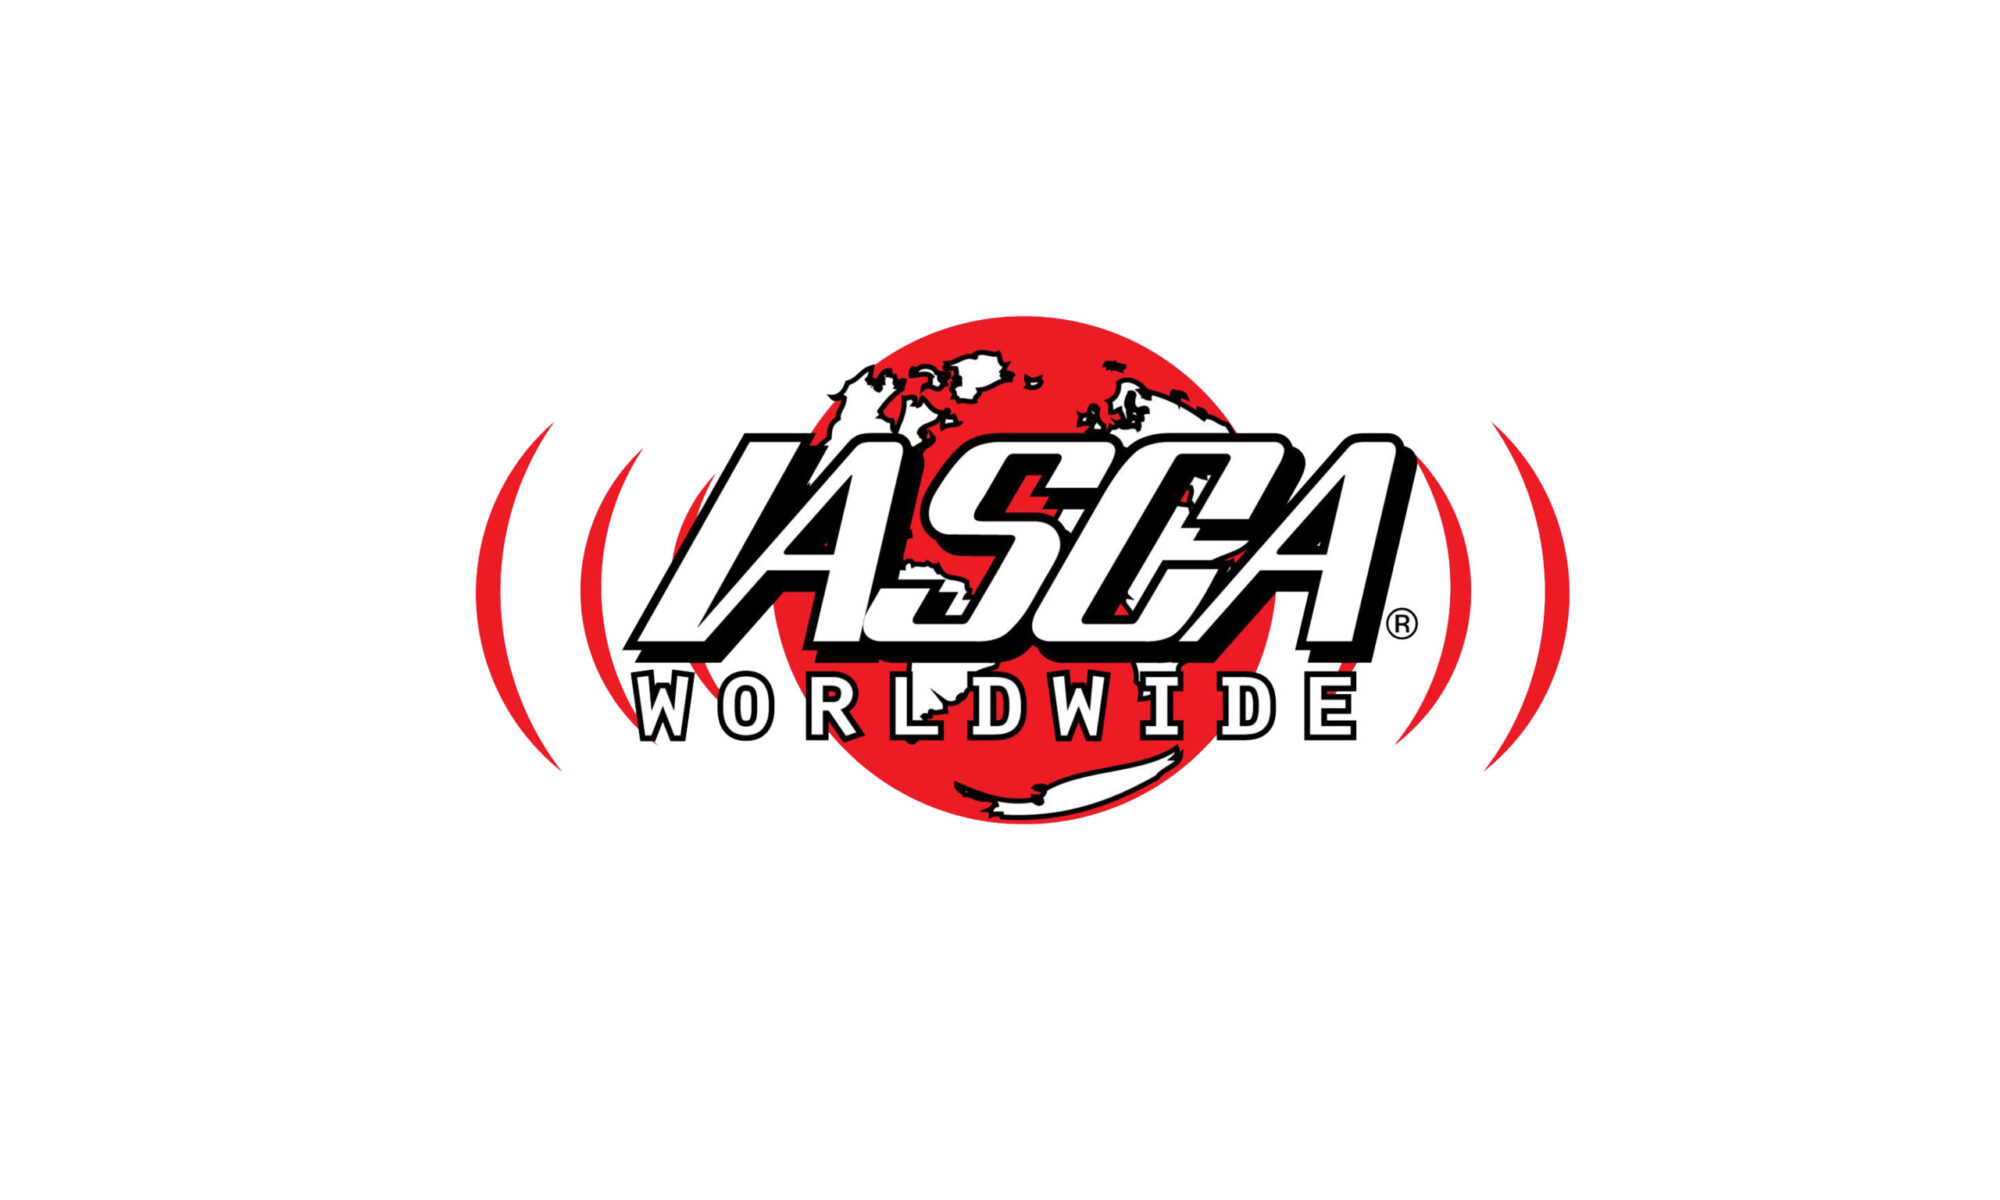 IASCA Worldwide, Inc.